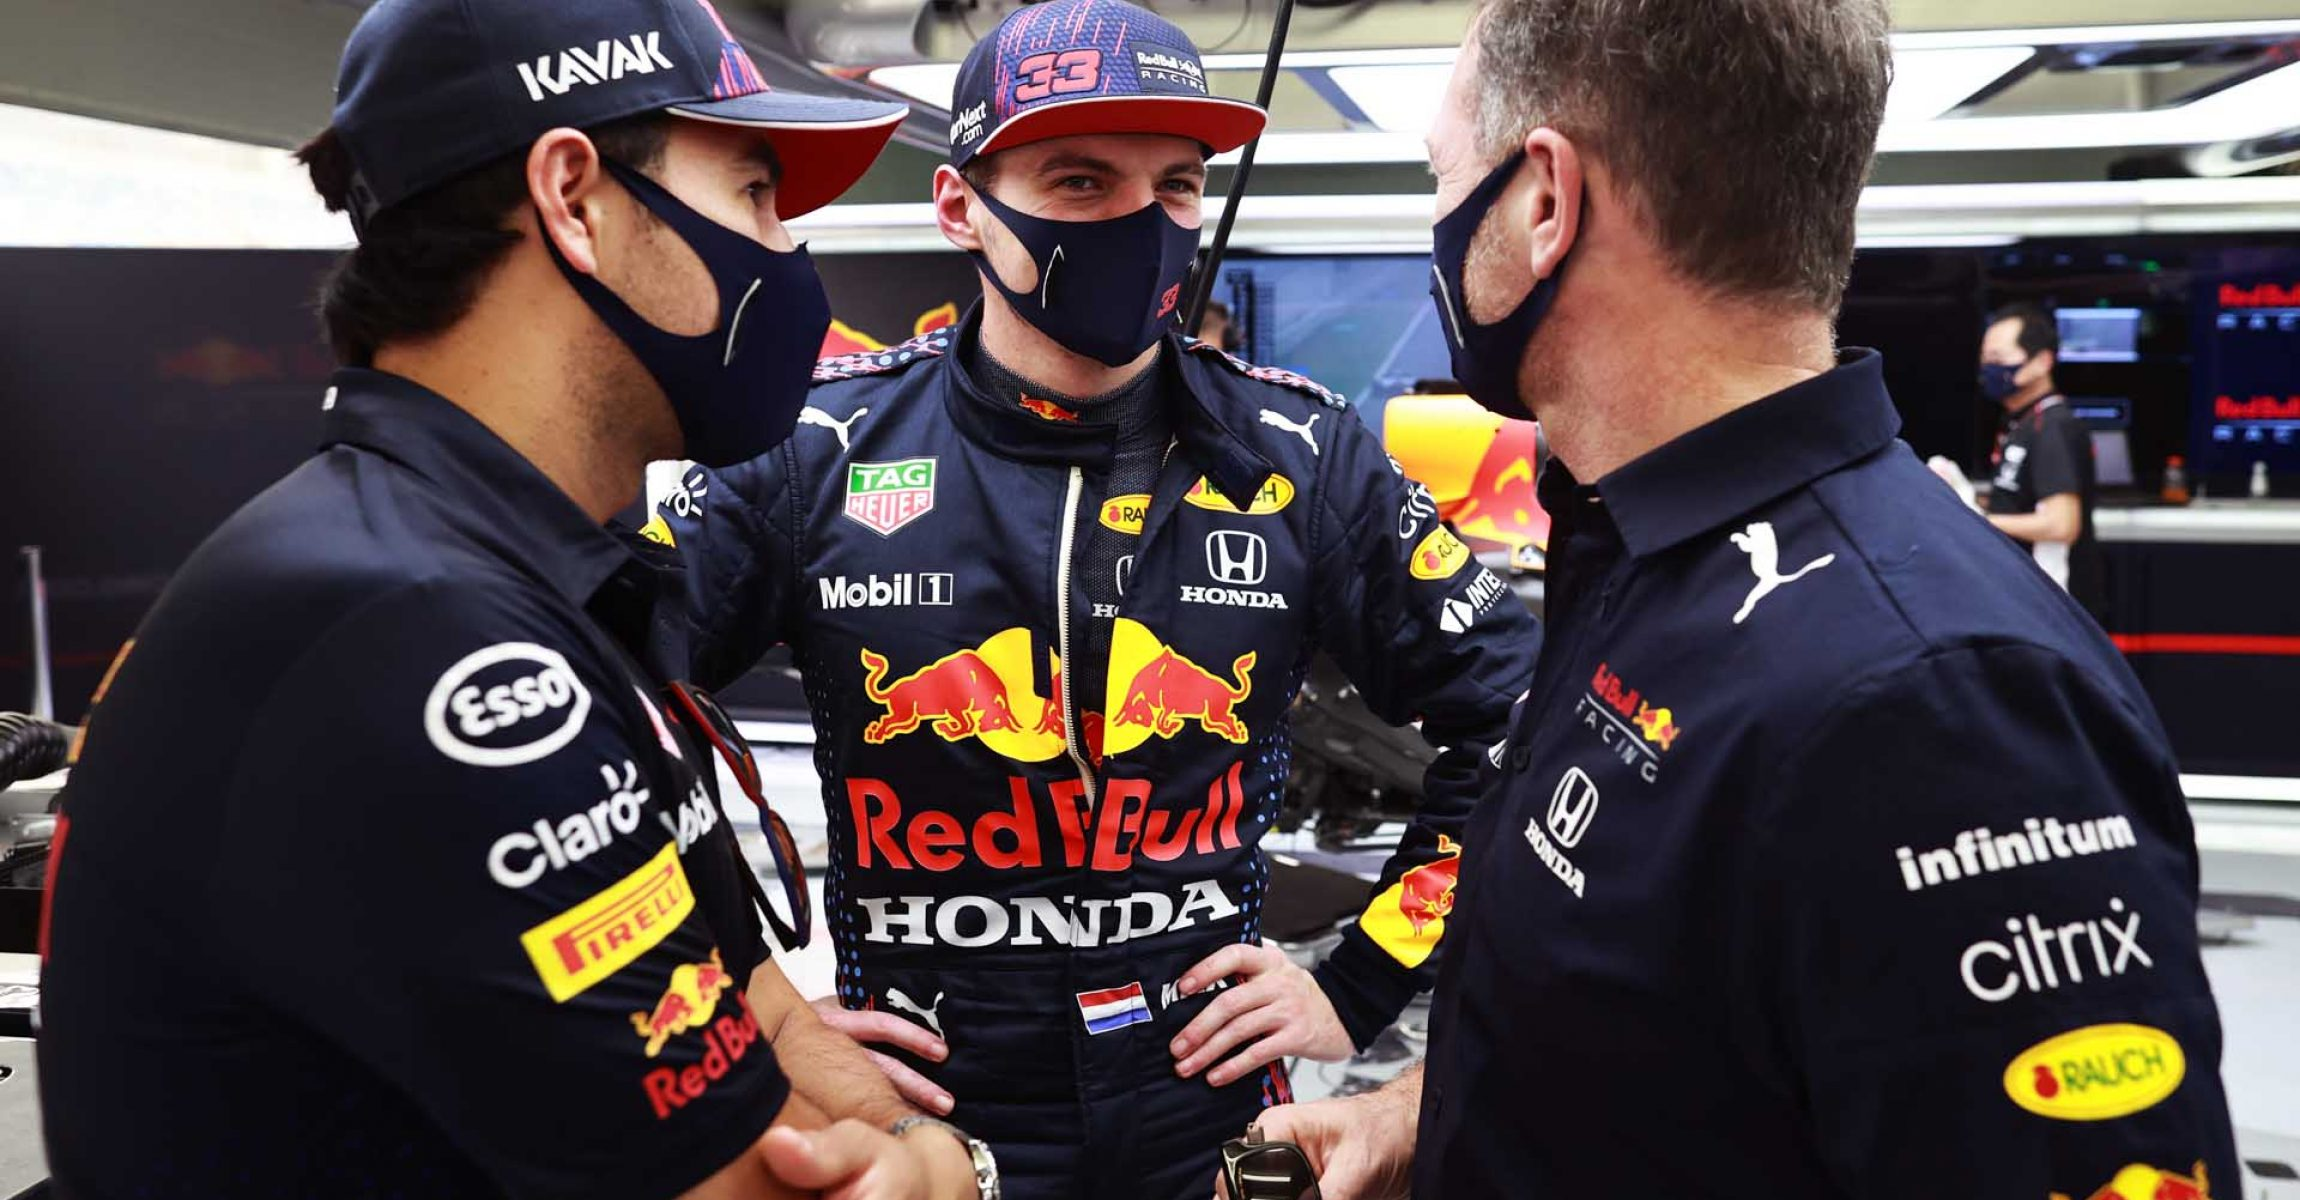 BAHRAIN, BAHRAIN - MARCH 12: Max Verstappen of Netherlands and Red Bull Racing talks with Sergio Perez of Mexico and Red Bull Racing and Red Bull Racing Team Principal Christian Horner in the garage during Day One of F1 Testing at Bahrain International Circuit on March 12, 2021 in Bahrain, Bahrain. (Photo by Mark Thompson/Getty Images) // Getty Images / Red Bull Content Pool  // SI202103121078 // Usage for editorial use only //